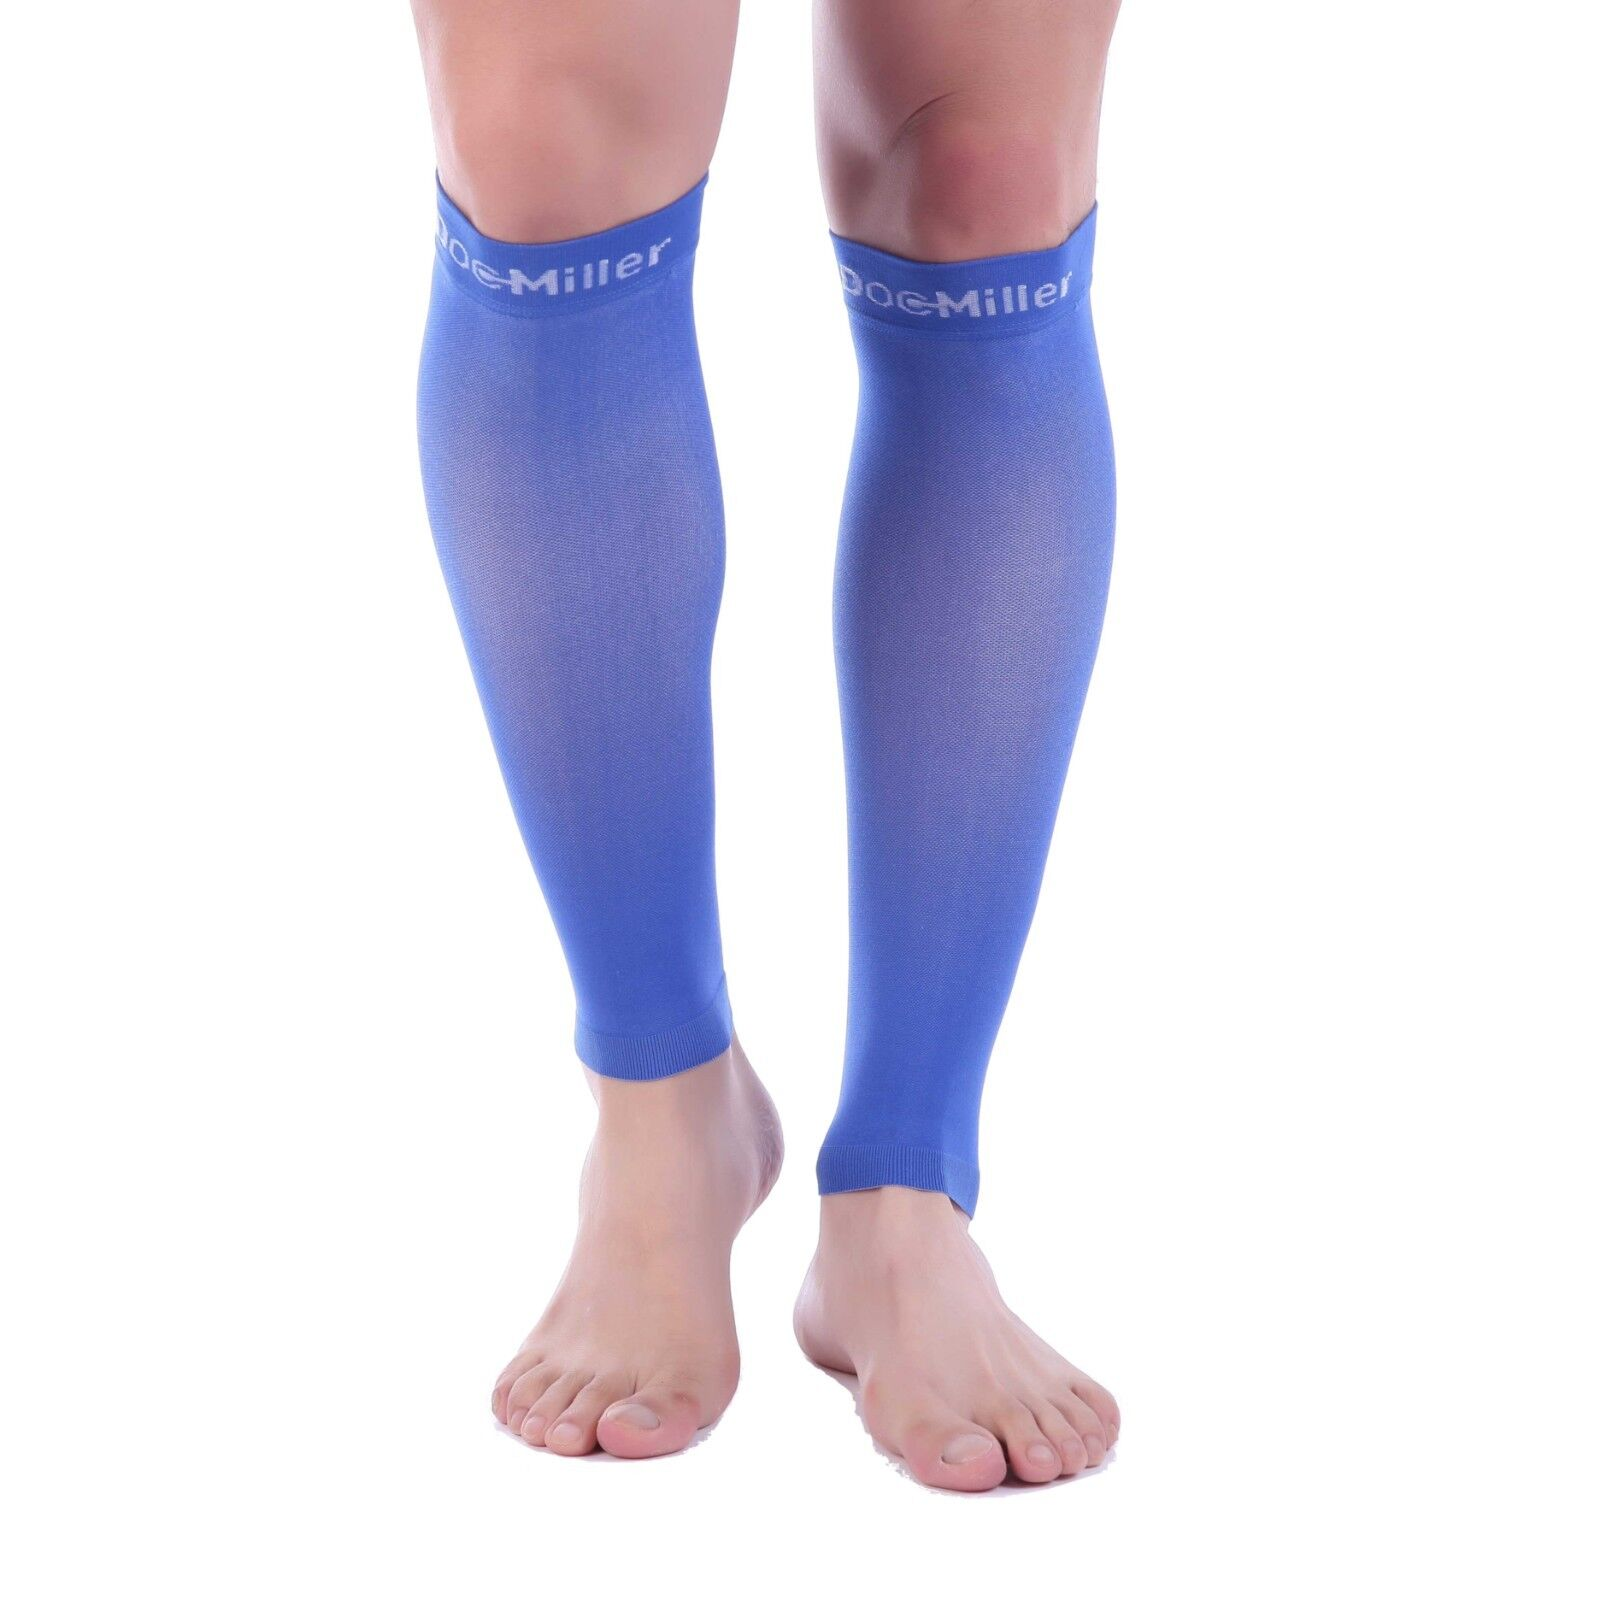 4f72ce8850 Details about Doc Miller Calf Compression Sleeve 1 Pair 20-30mmHg Recovery  Varicose Veins BLUE